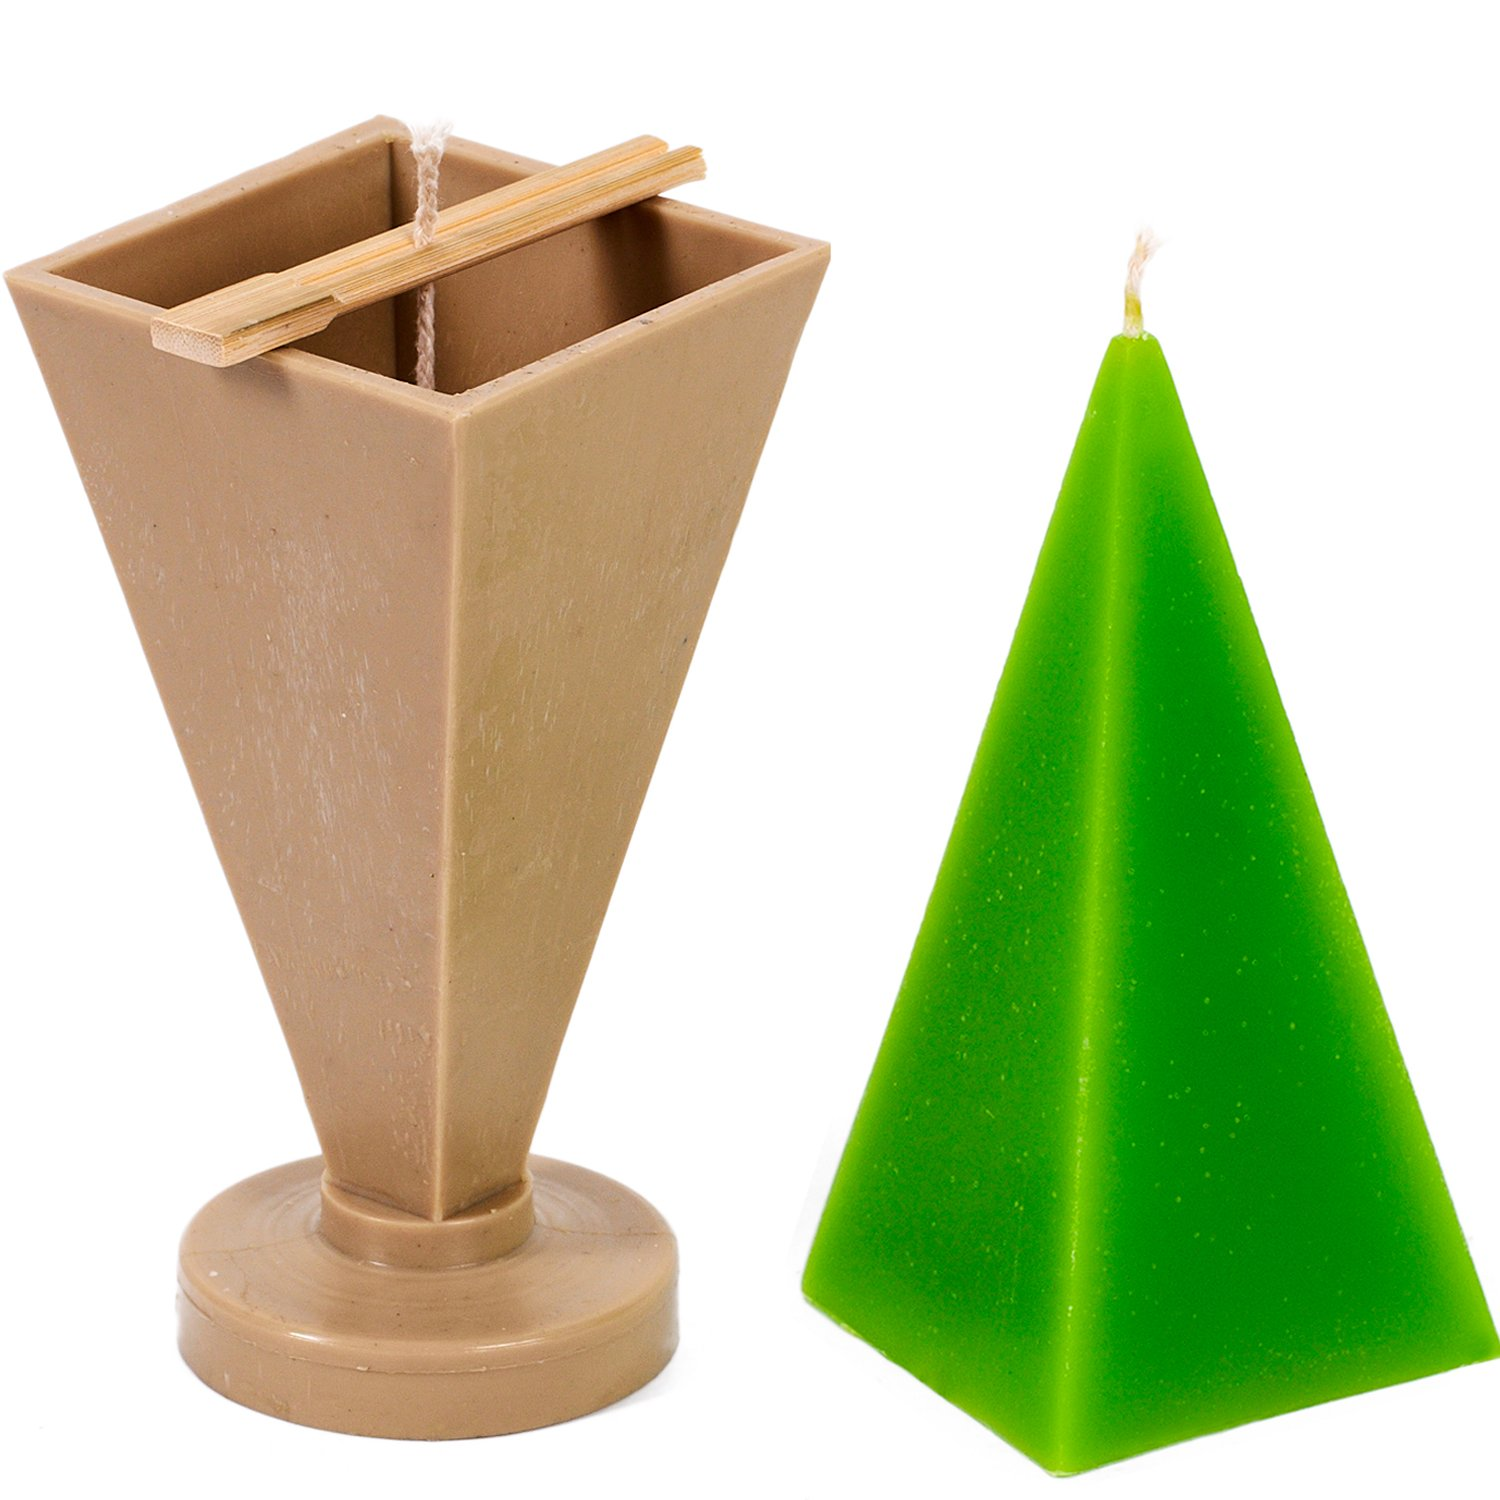 Candle Shop - Pyramid mold - height: 6.3 in, width: 2.7 in - 30 ft. of wick included as a gift - Plastic candle molds for making candles by Candle Shop (Image #1)